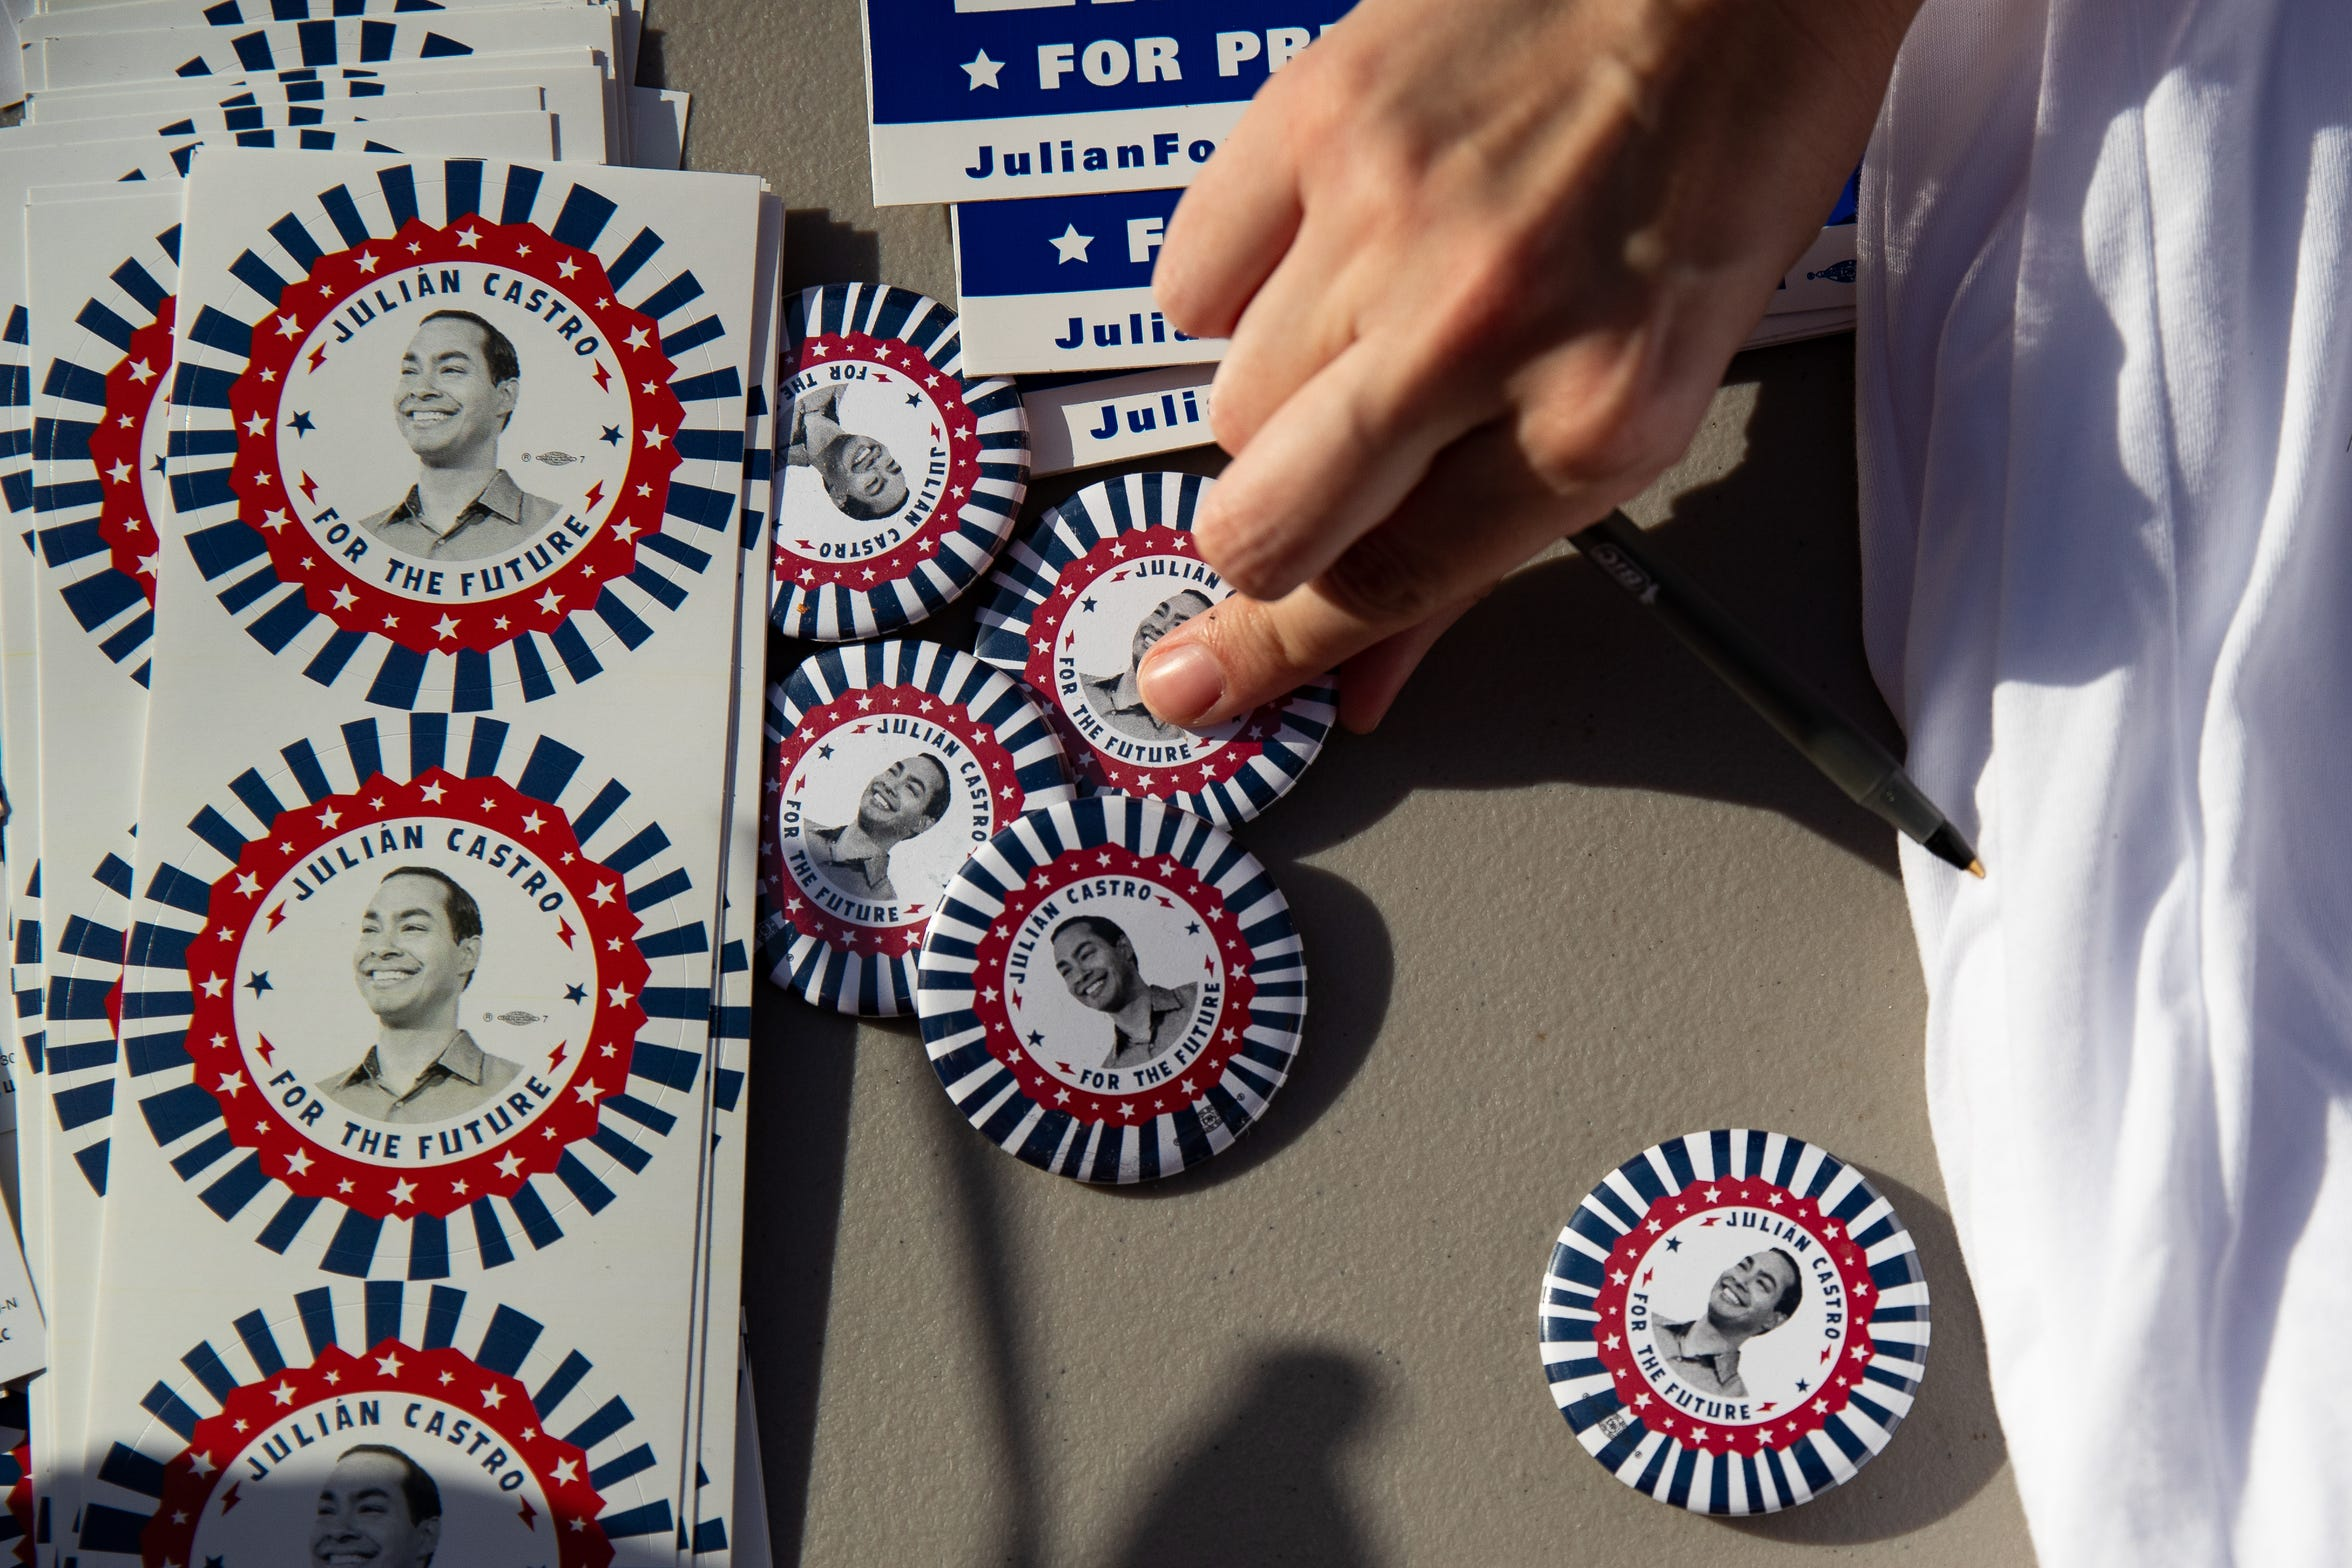 Presidential candidate Julian Castro political merchandise for sale before his People First rally in San Antonio, Texas on Wednesday, April 10, 2019. Earlier in the day President Trump also hosted a fundraiser in San Antonio Texas.